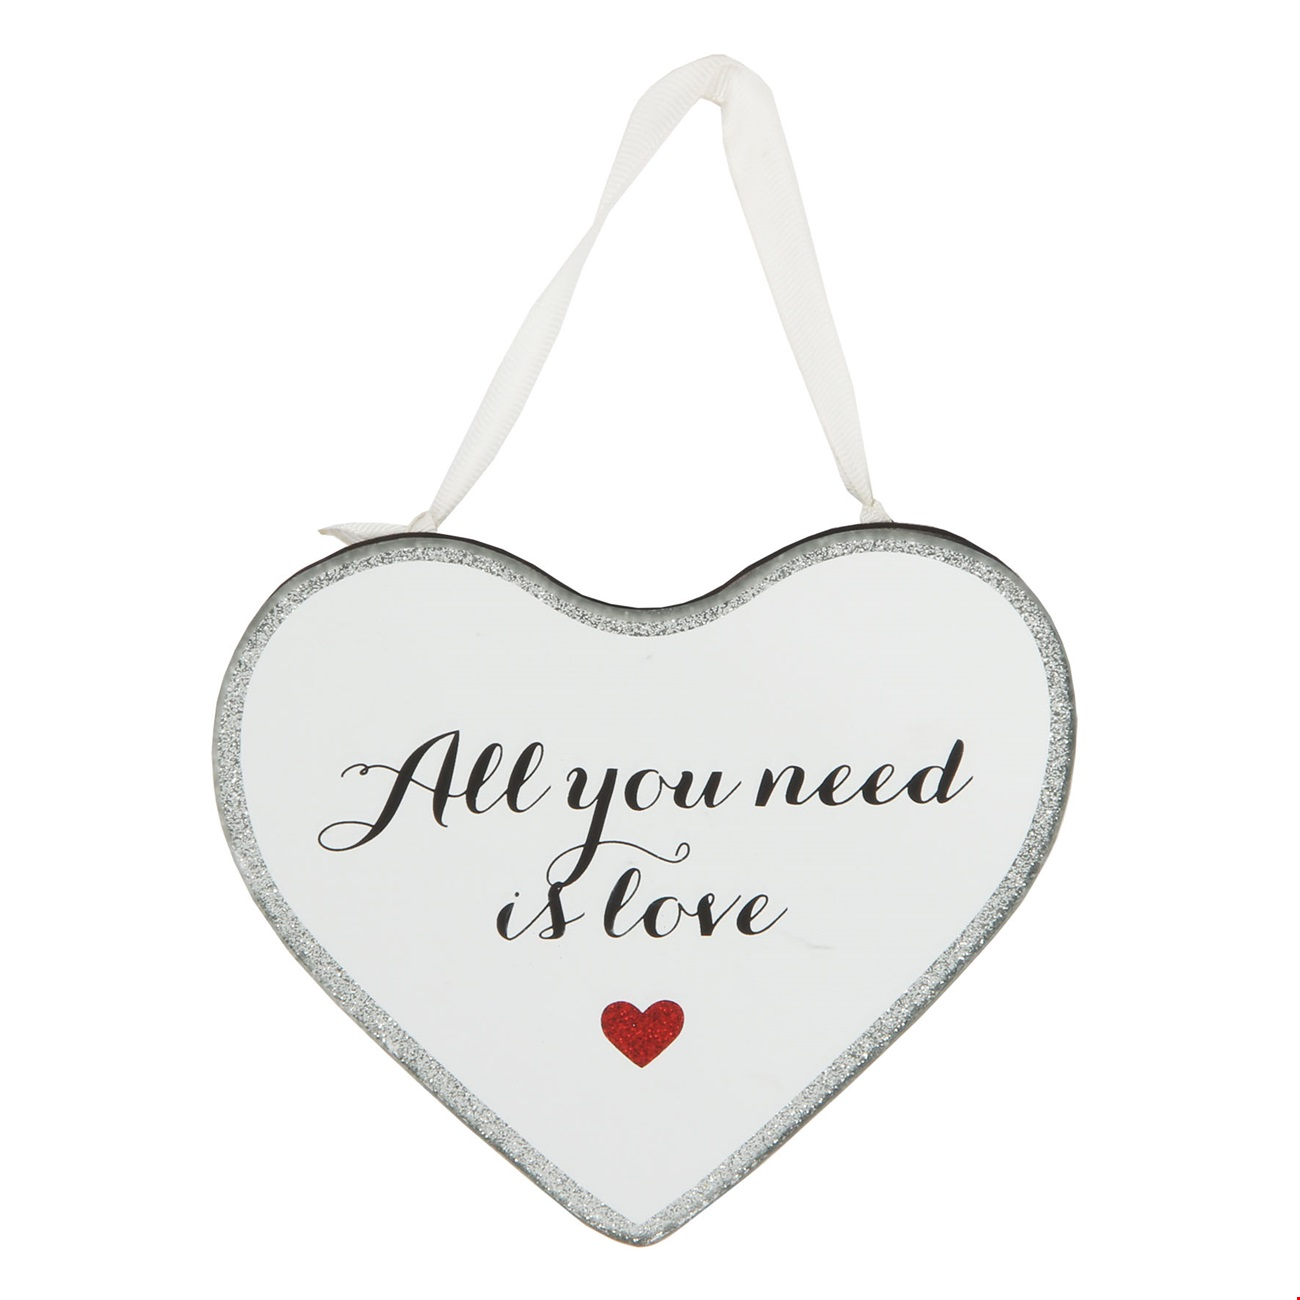 'Lasting Memories' Mirror Plaque - Need Is Love